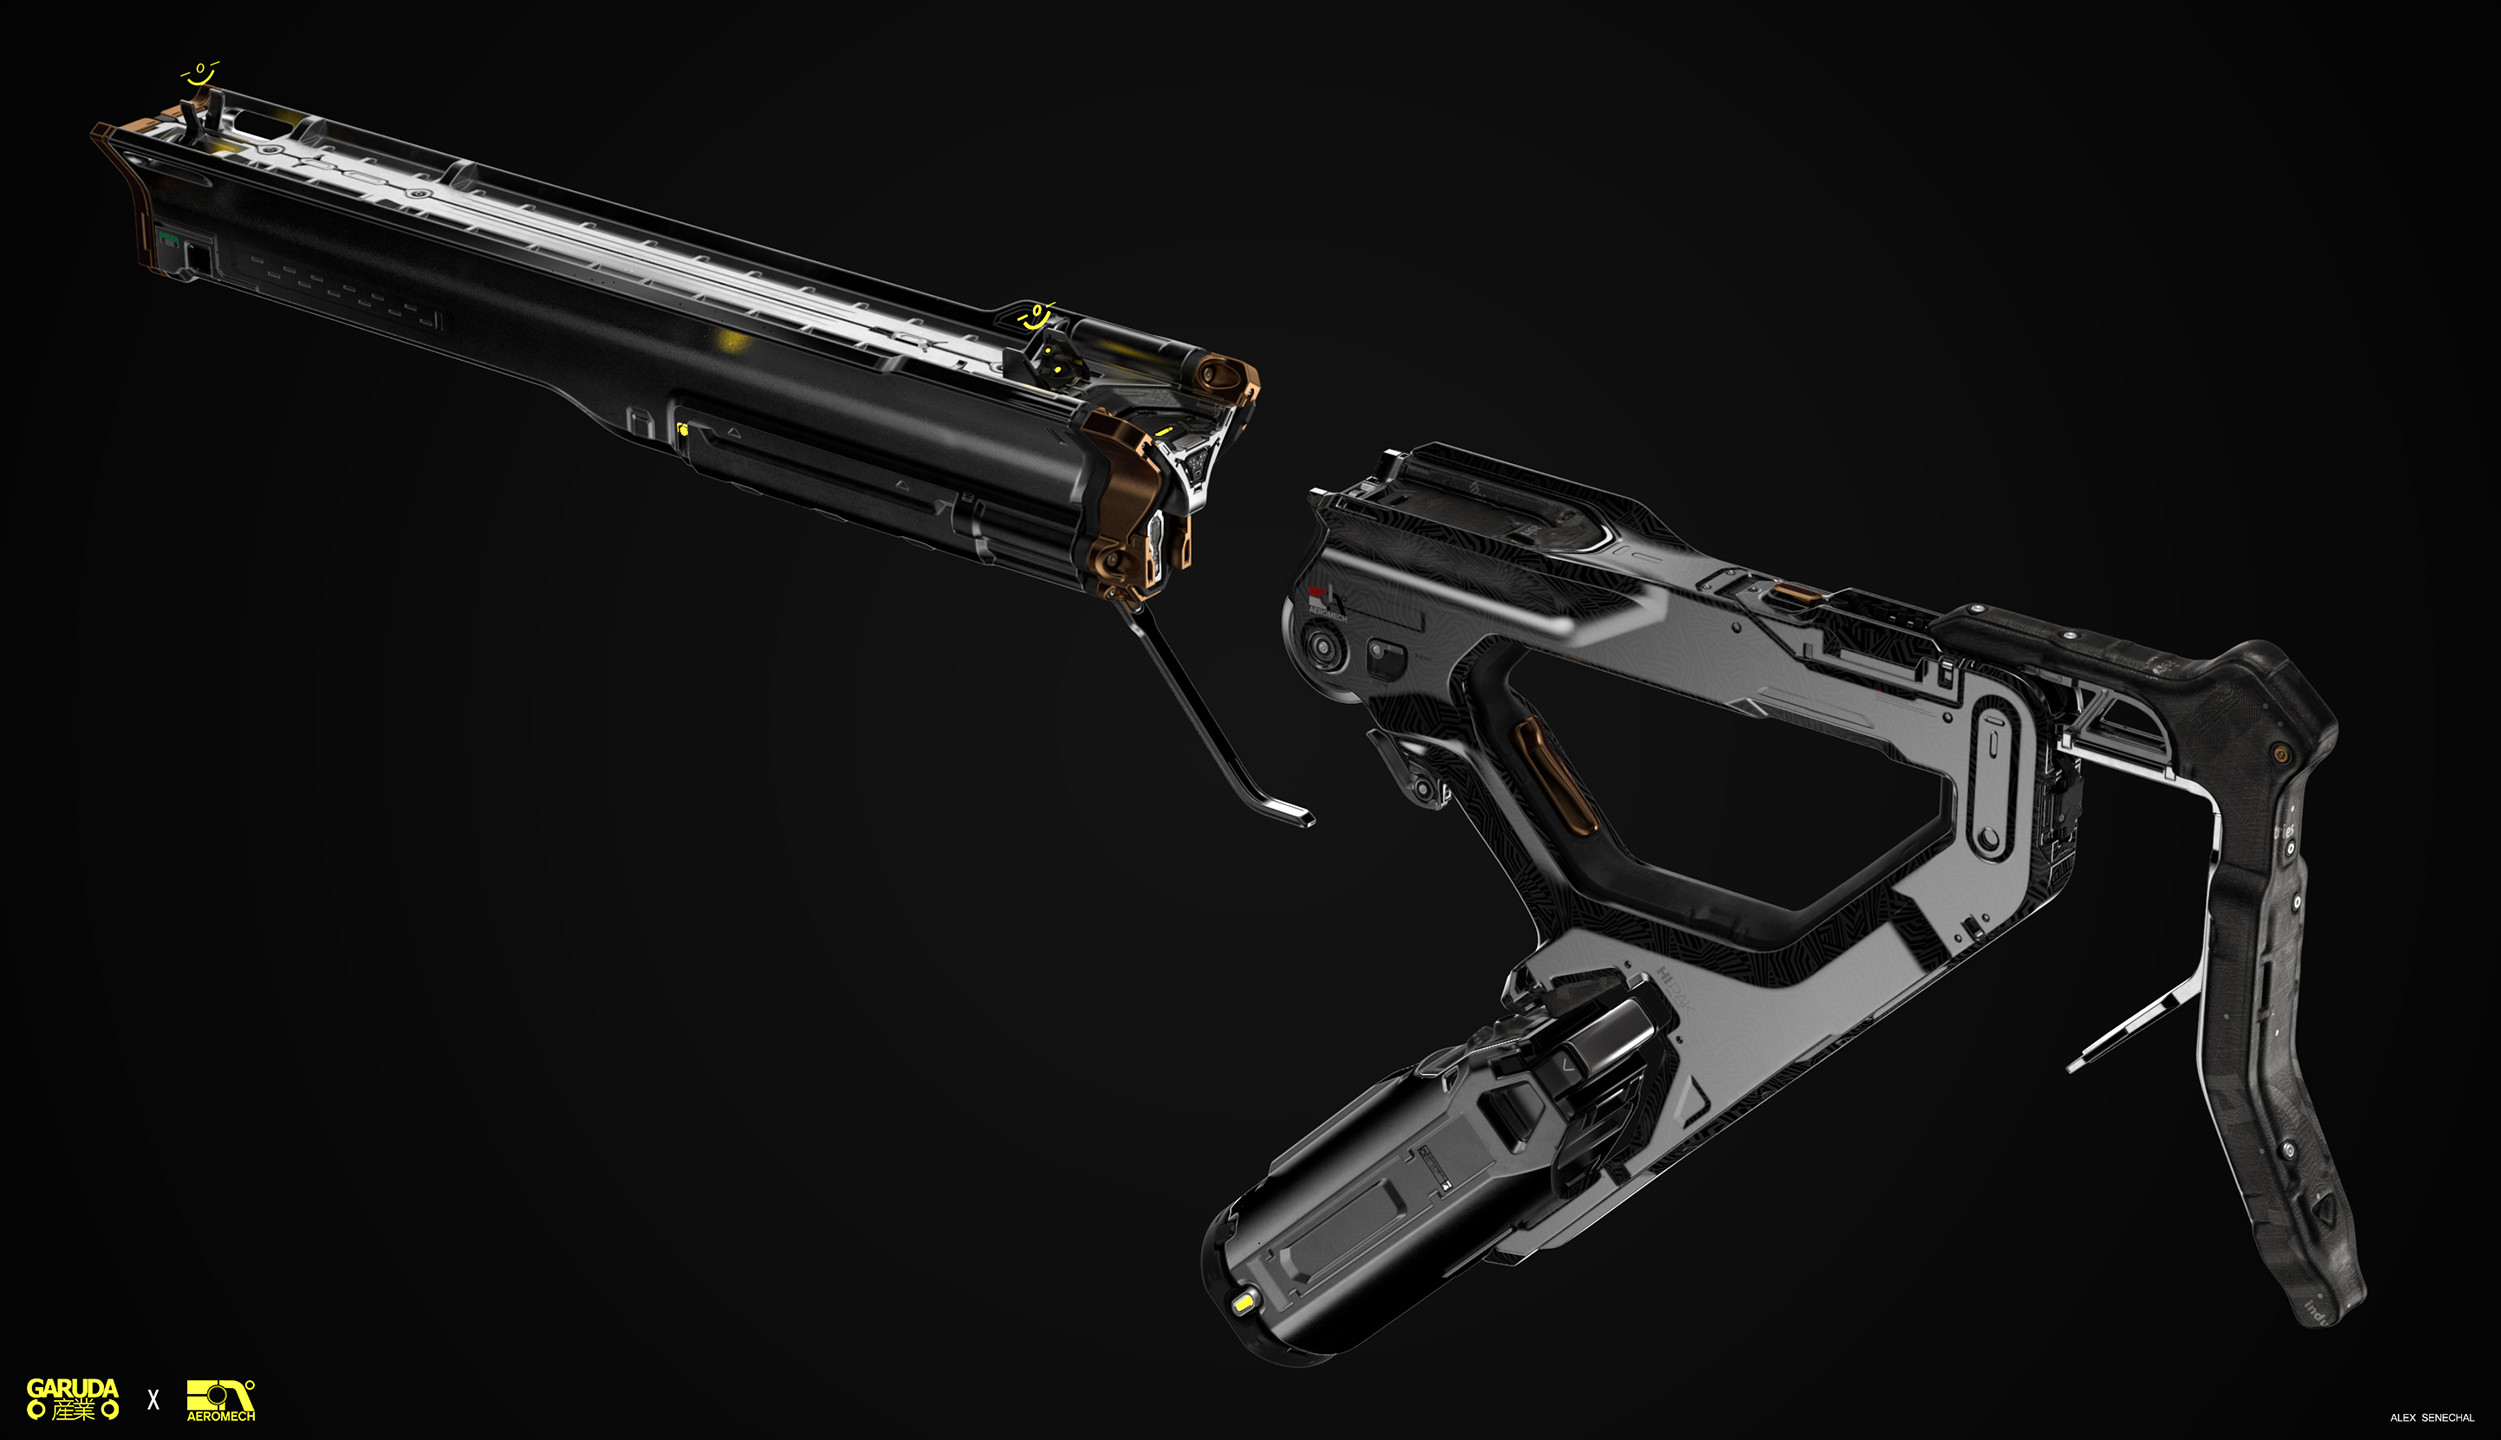 AeroMech created parts of the rifle in conjunction with Garuda Industries